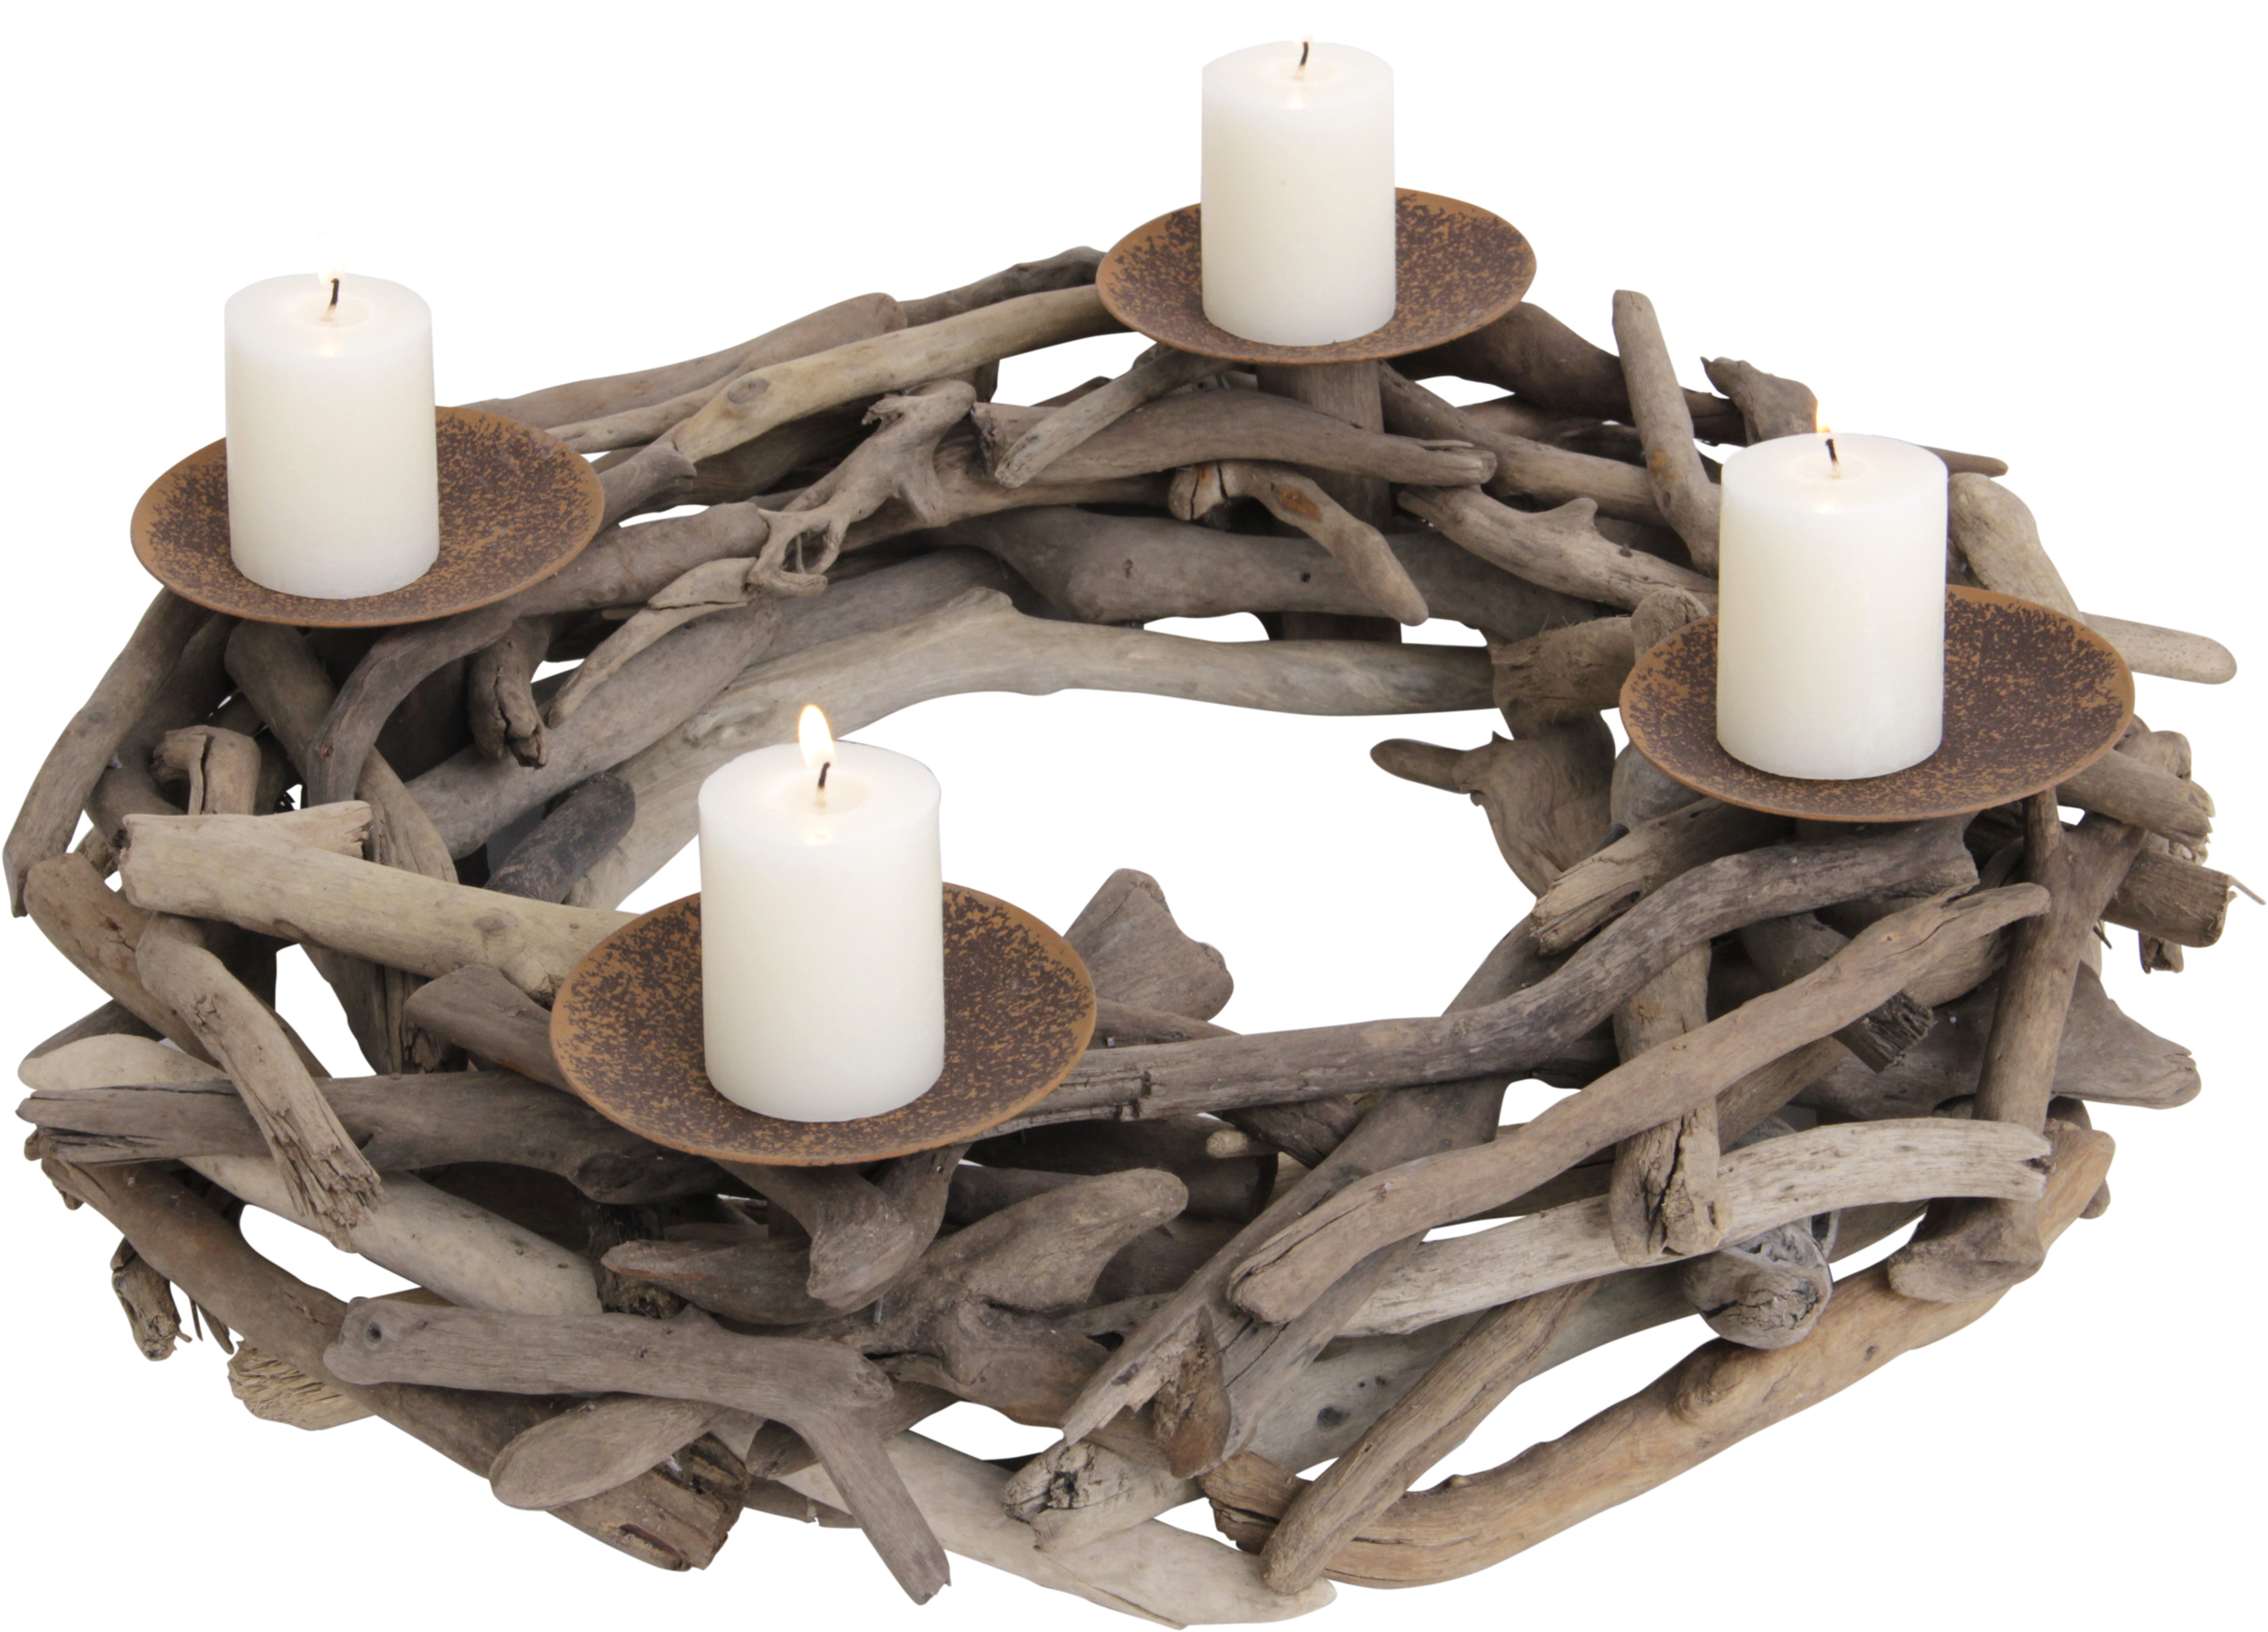 driftwood wreath candle holder L.jpg